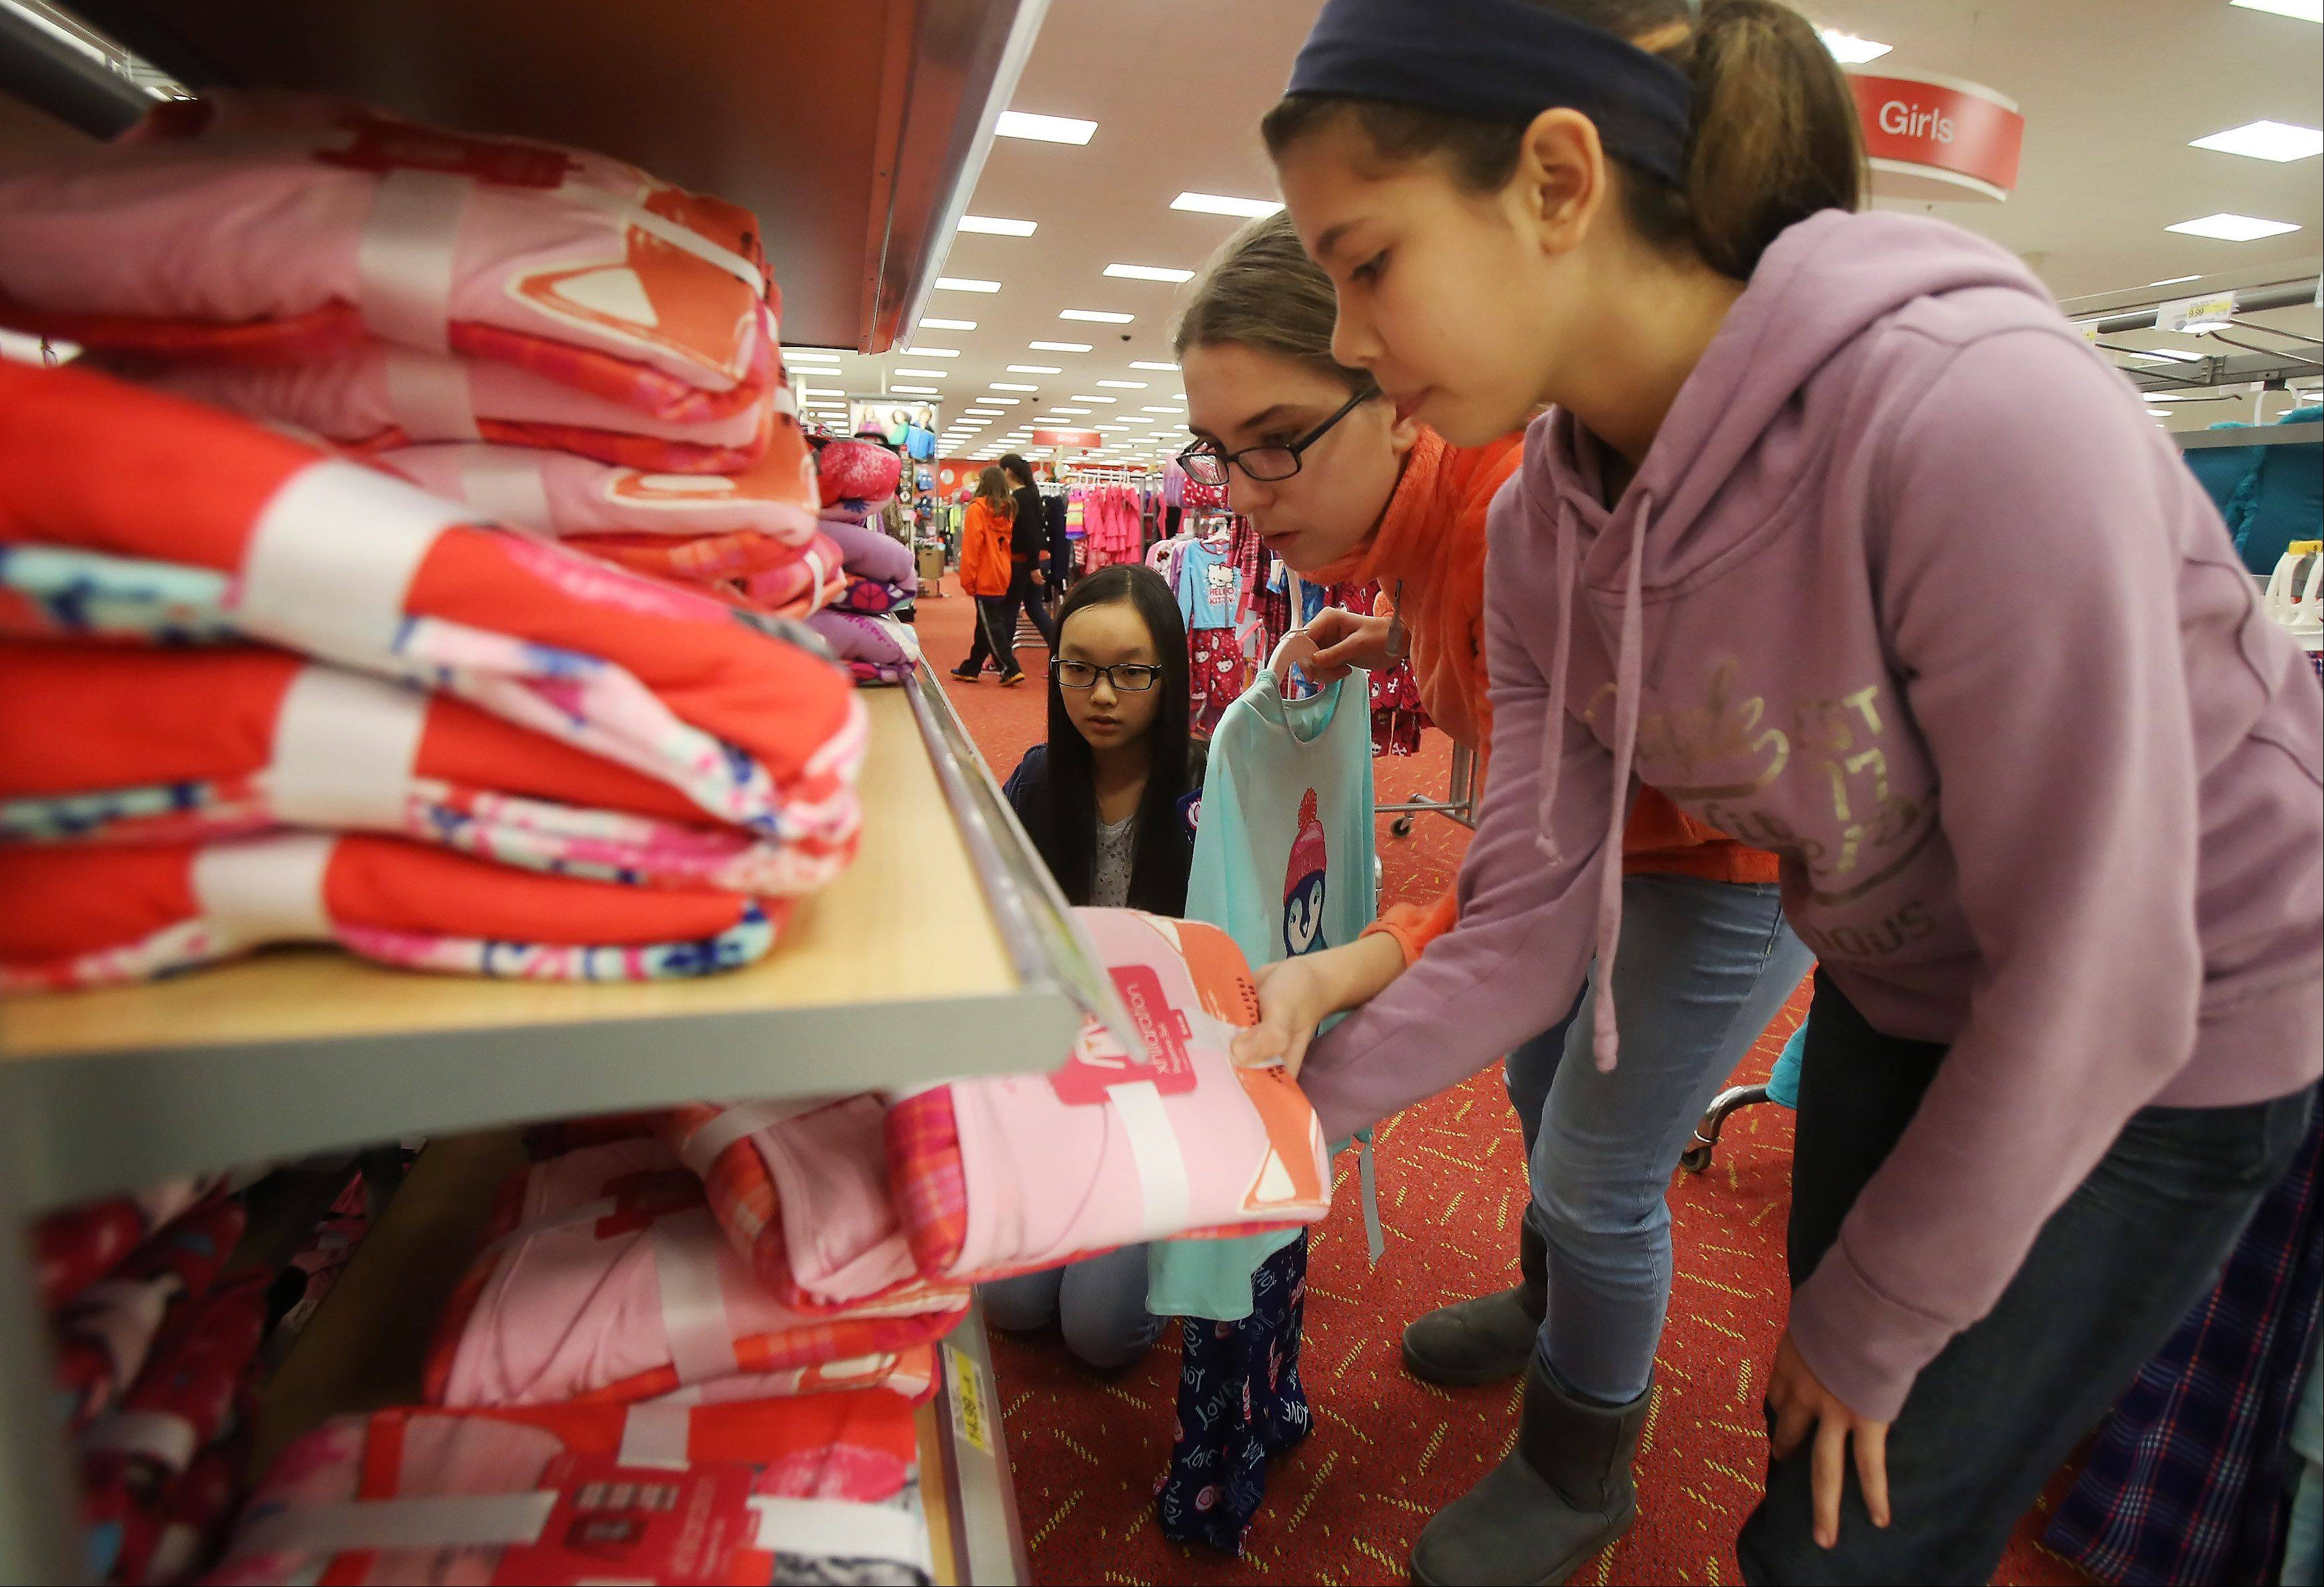 Seventh graders Stephanie Rivas, right, Julia Sulicka and Anna Lee pick out pajamas as students from Carl Sandbug Middle School selected toys and clothing from Target In Mundelein and purchased them for a needy Mundelein family. The Community Service Club raised $333 to help the family for the holidays.